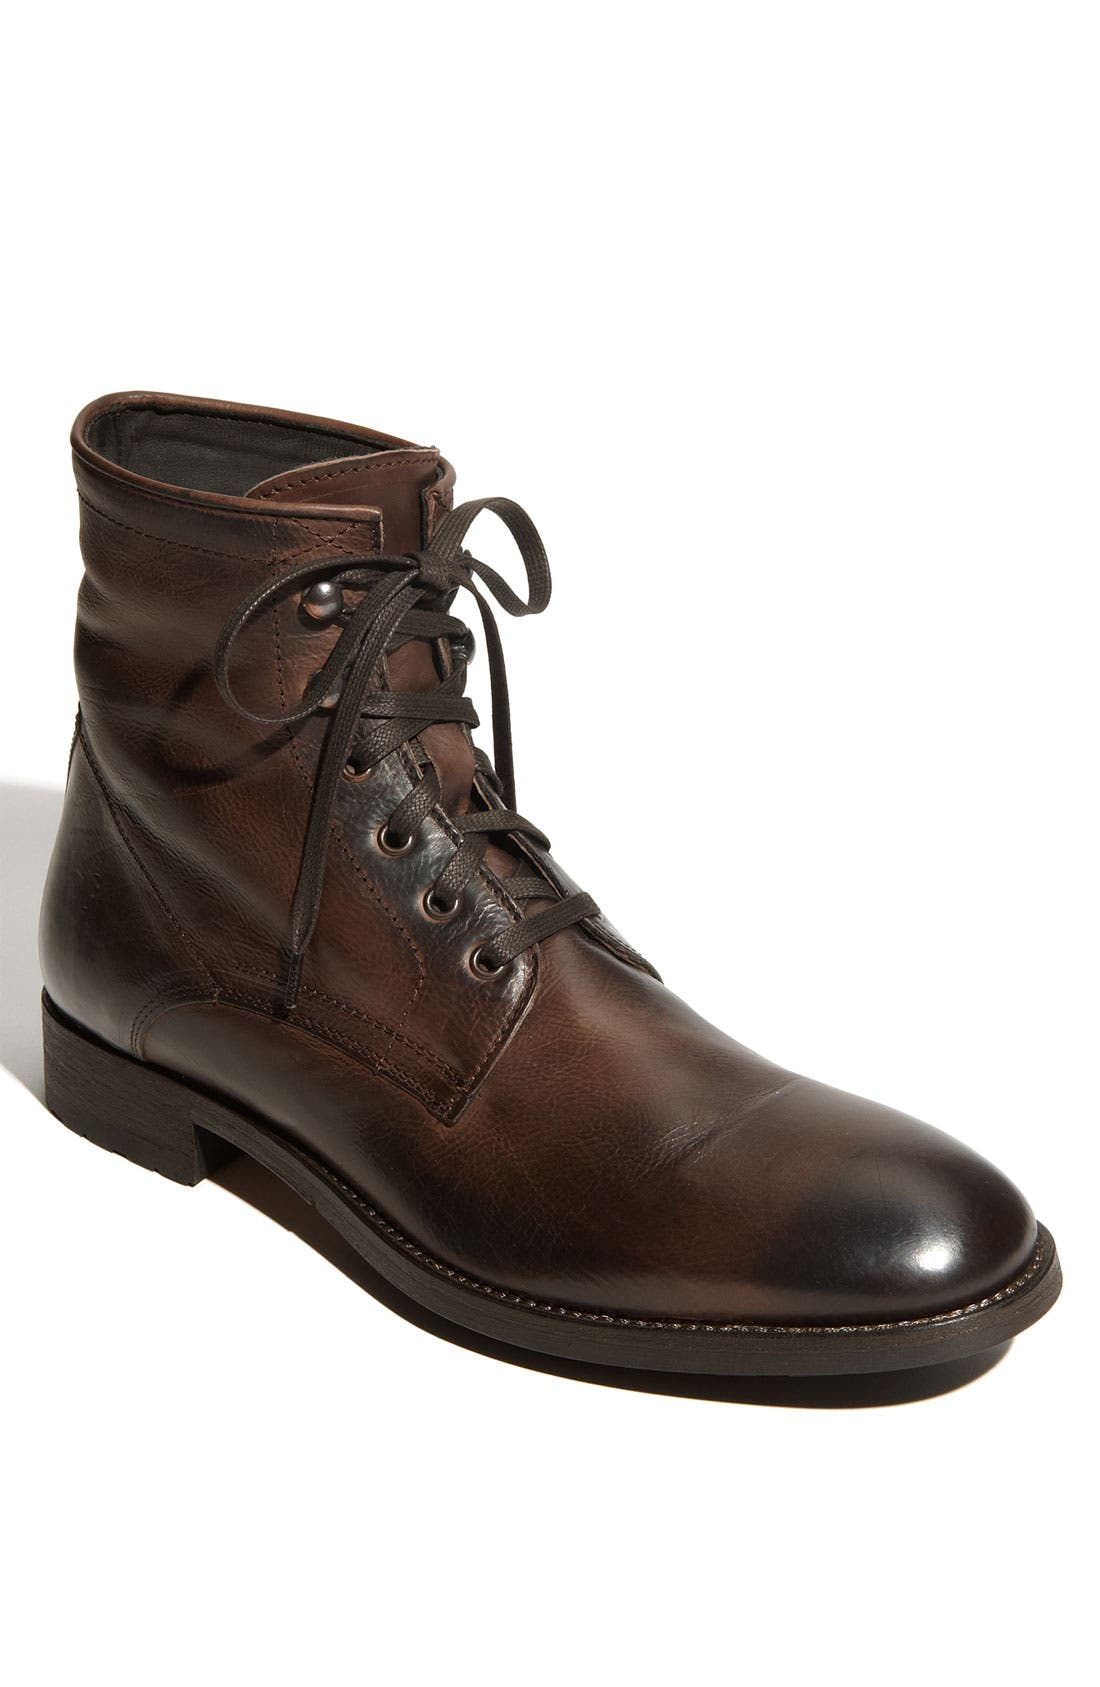 Main Image - To Boot New York 'Kilburn' Boot